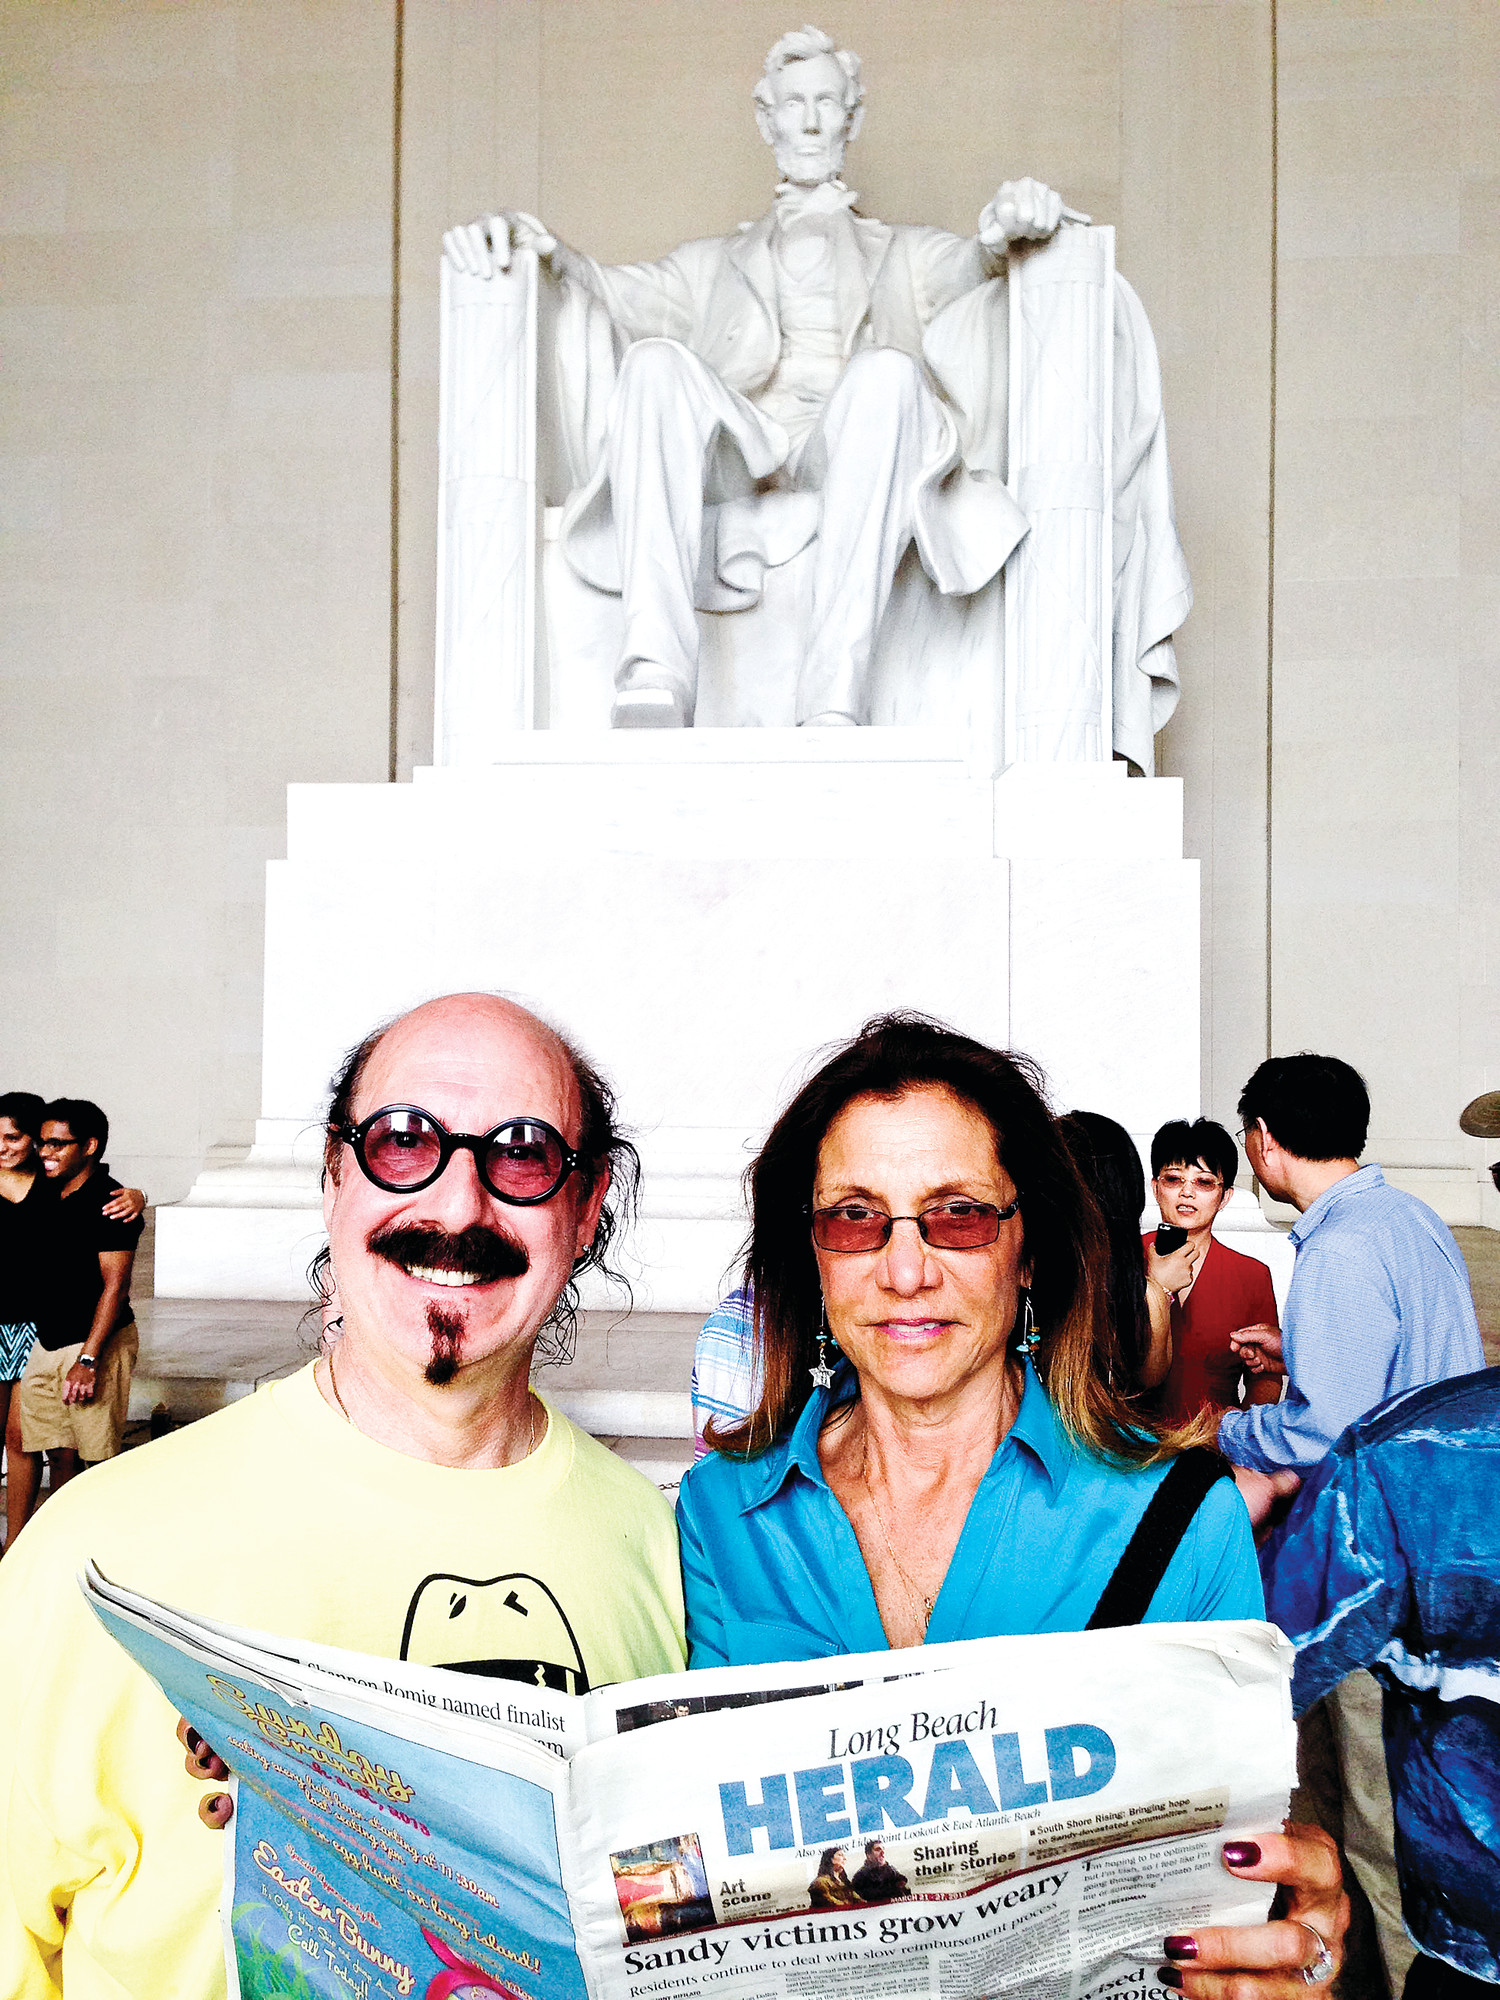 At the Lincoln Memorial — Washington, D.C.